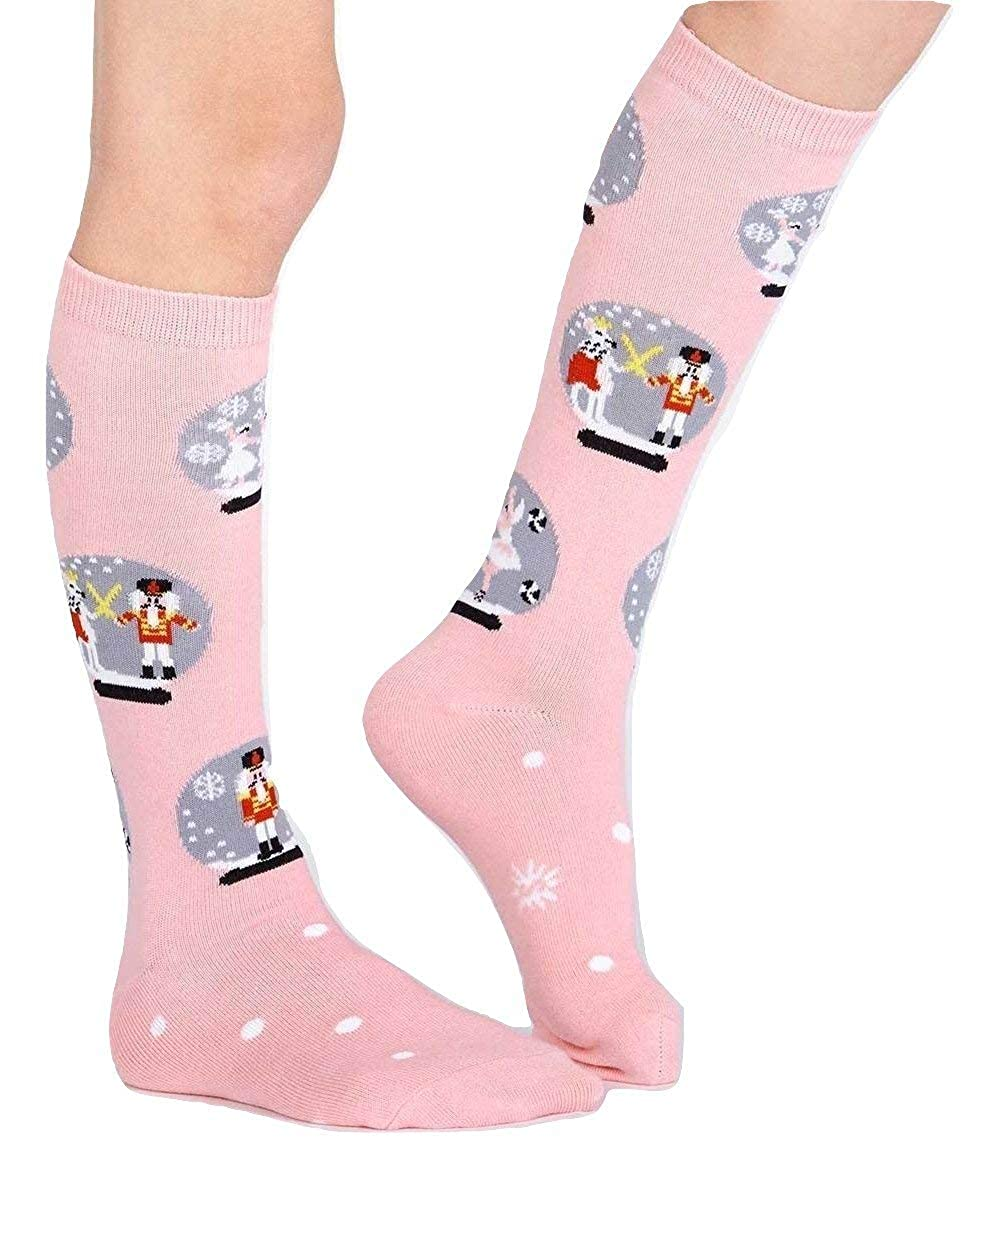 Amazon.com: Calcetines Sock It to Me, de ballet, para ...